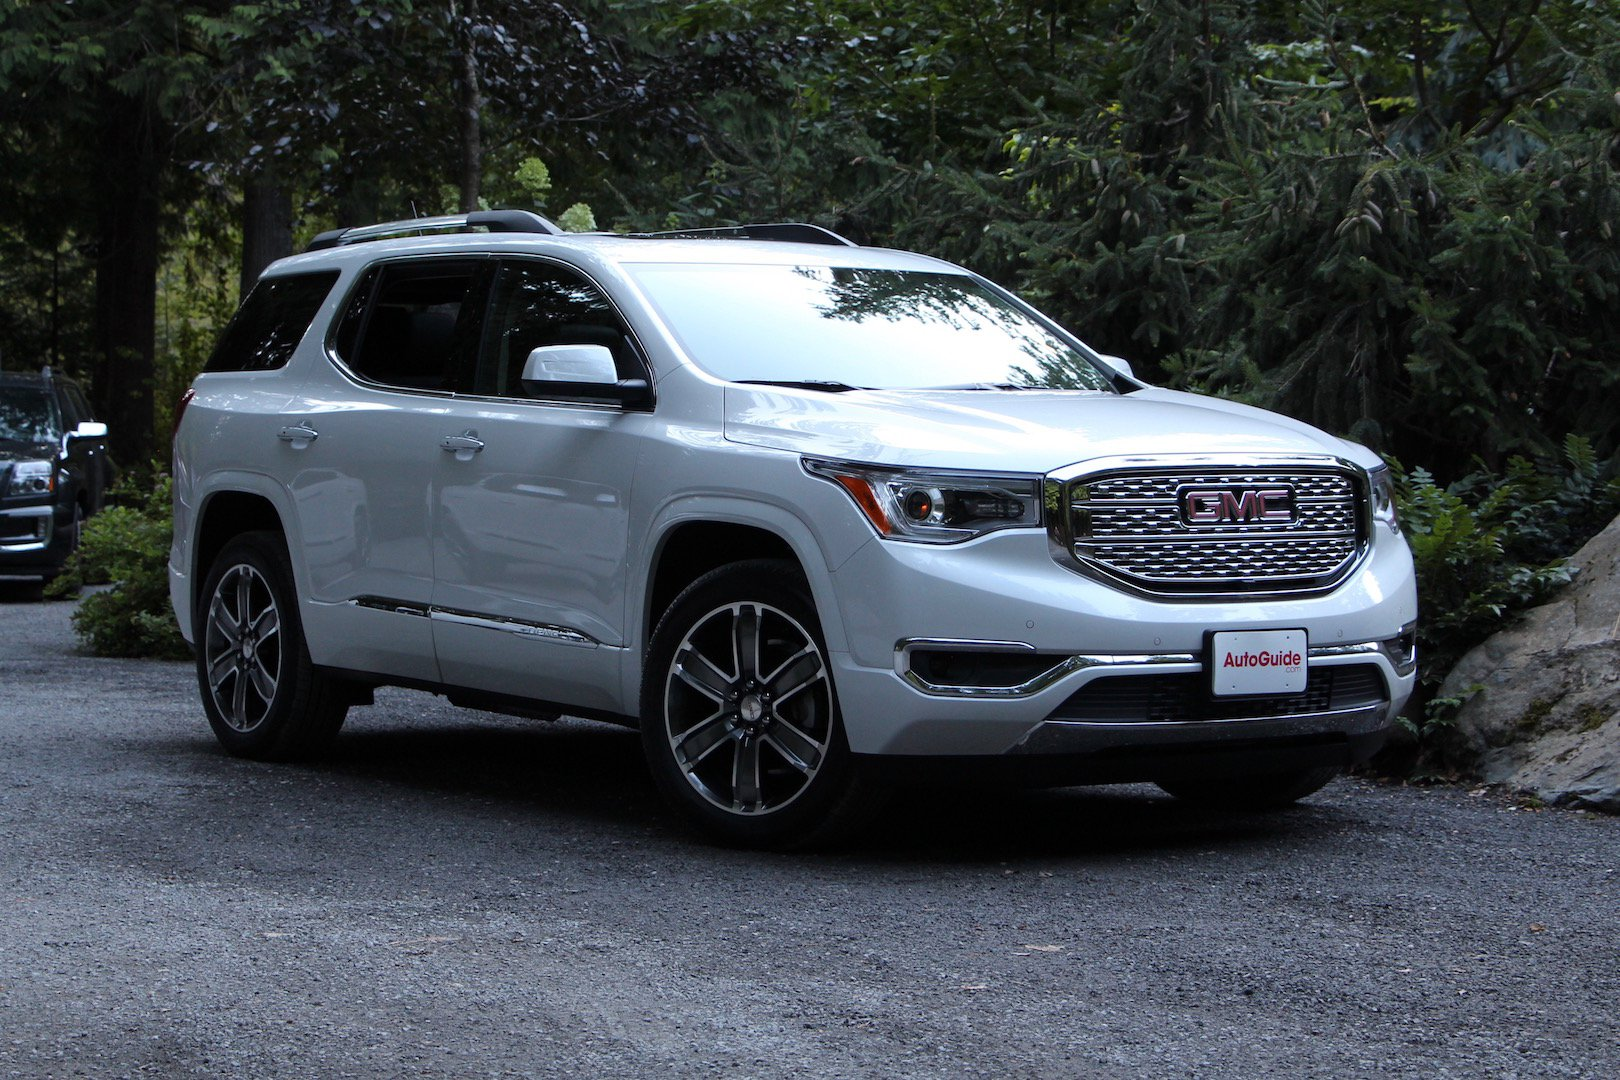 hight resolution of 2017 gmc acadia 01 the 2017 gmc acadia is a crossover after your 2017 gmc acadia fuse box